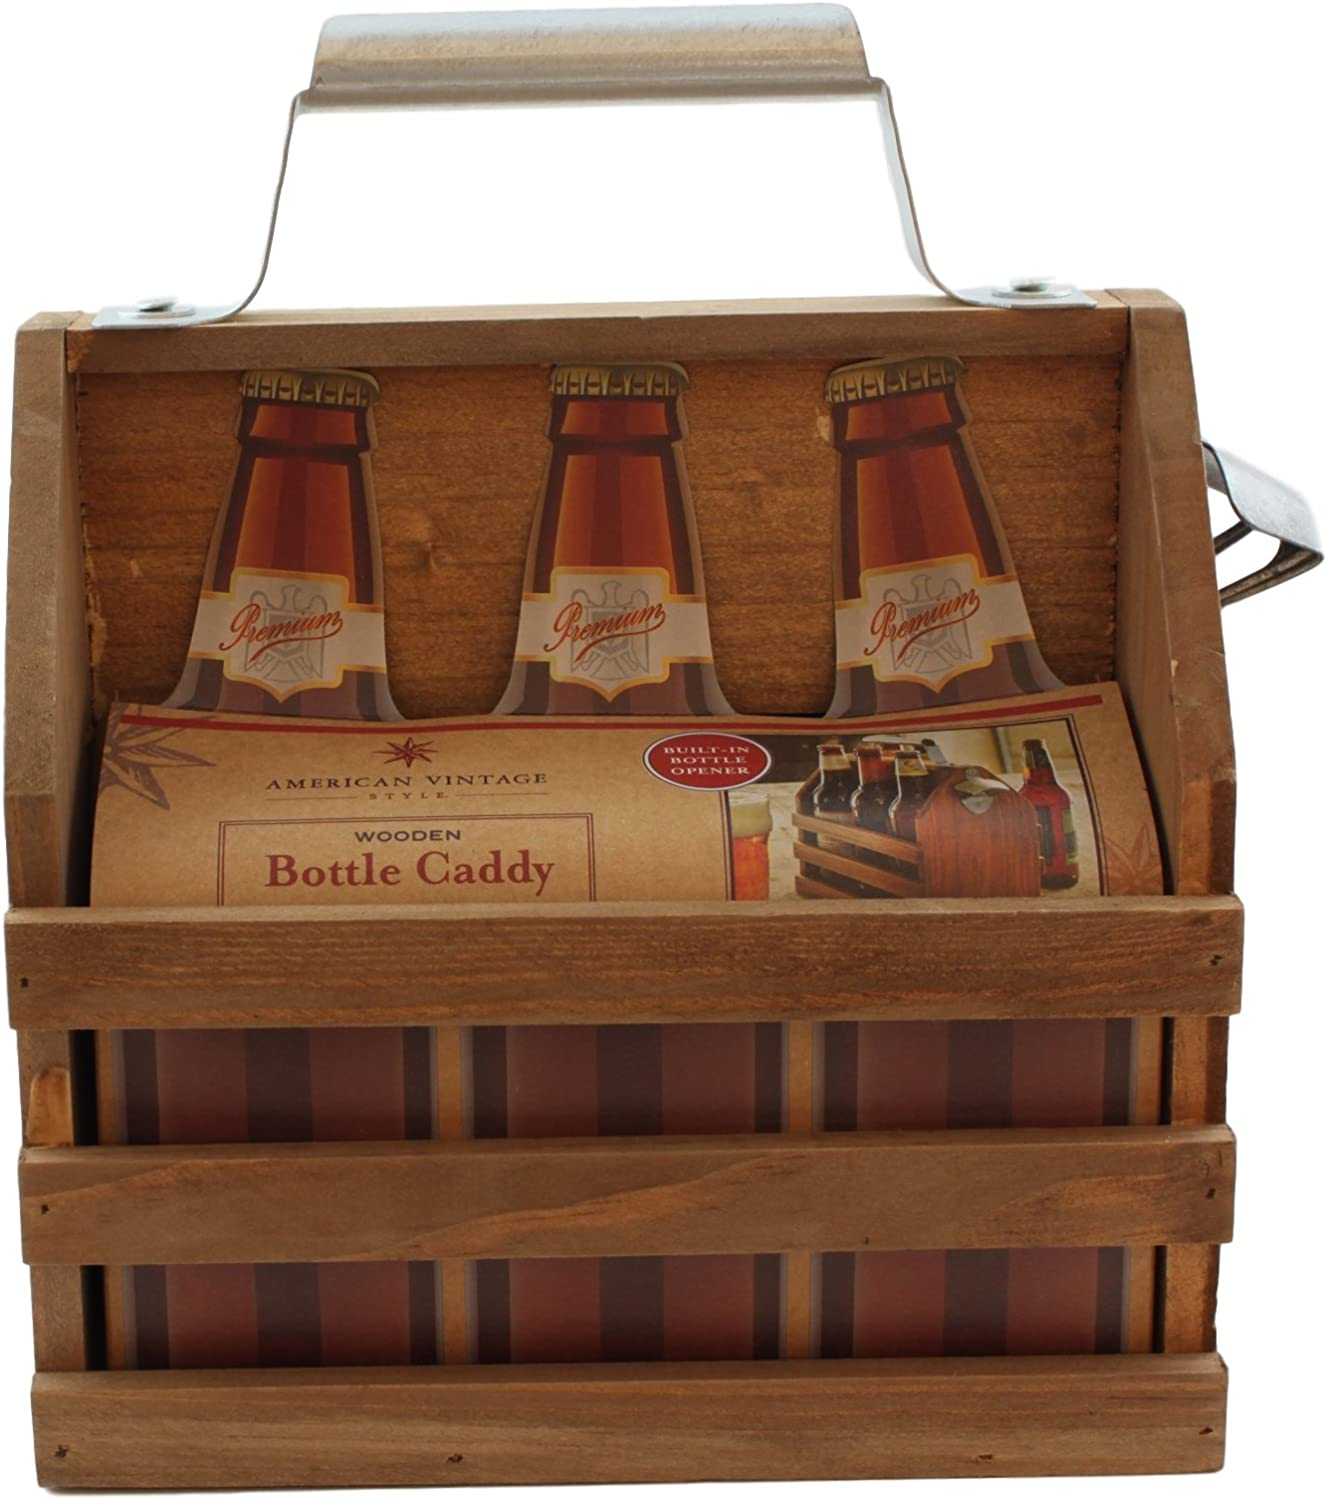 American Vintage Style Wooden Bottle Caddy with Built-In Bottle Opener